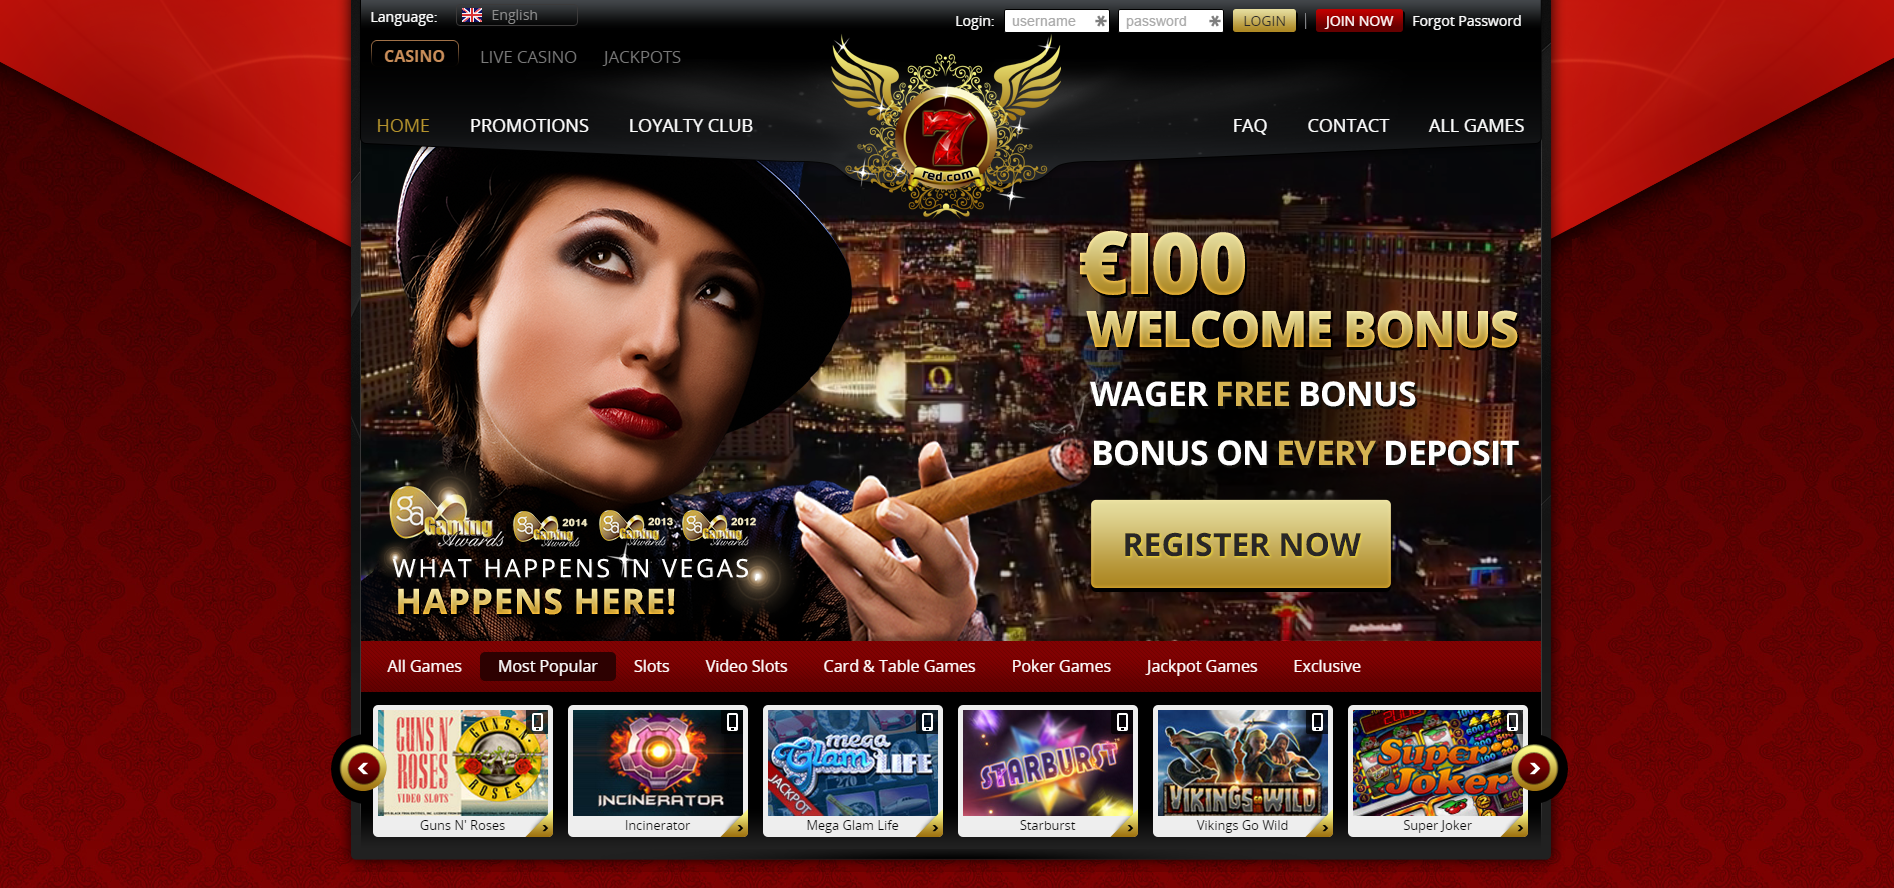 Casino reviews il video poker casino california